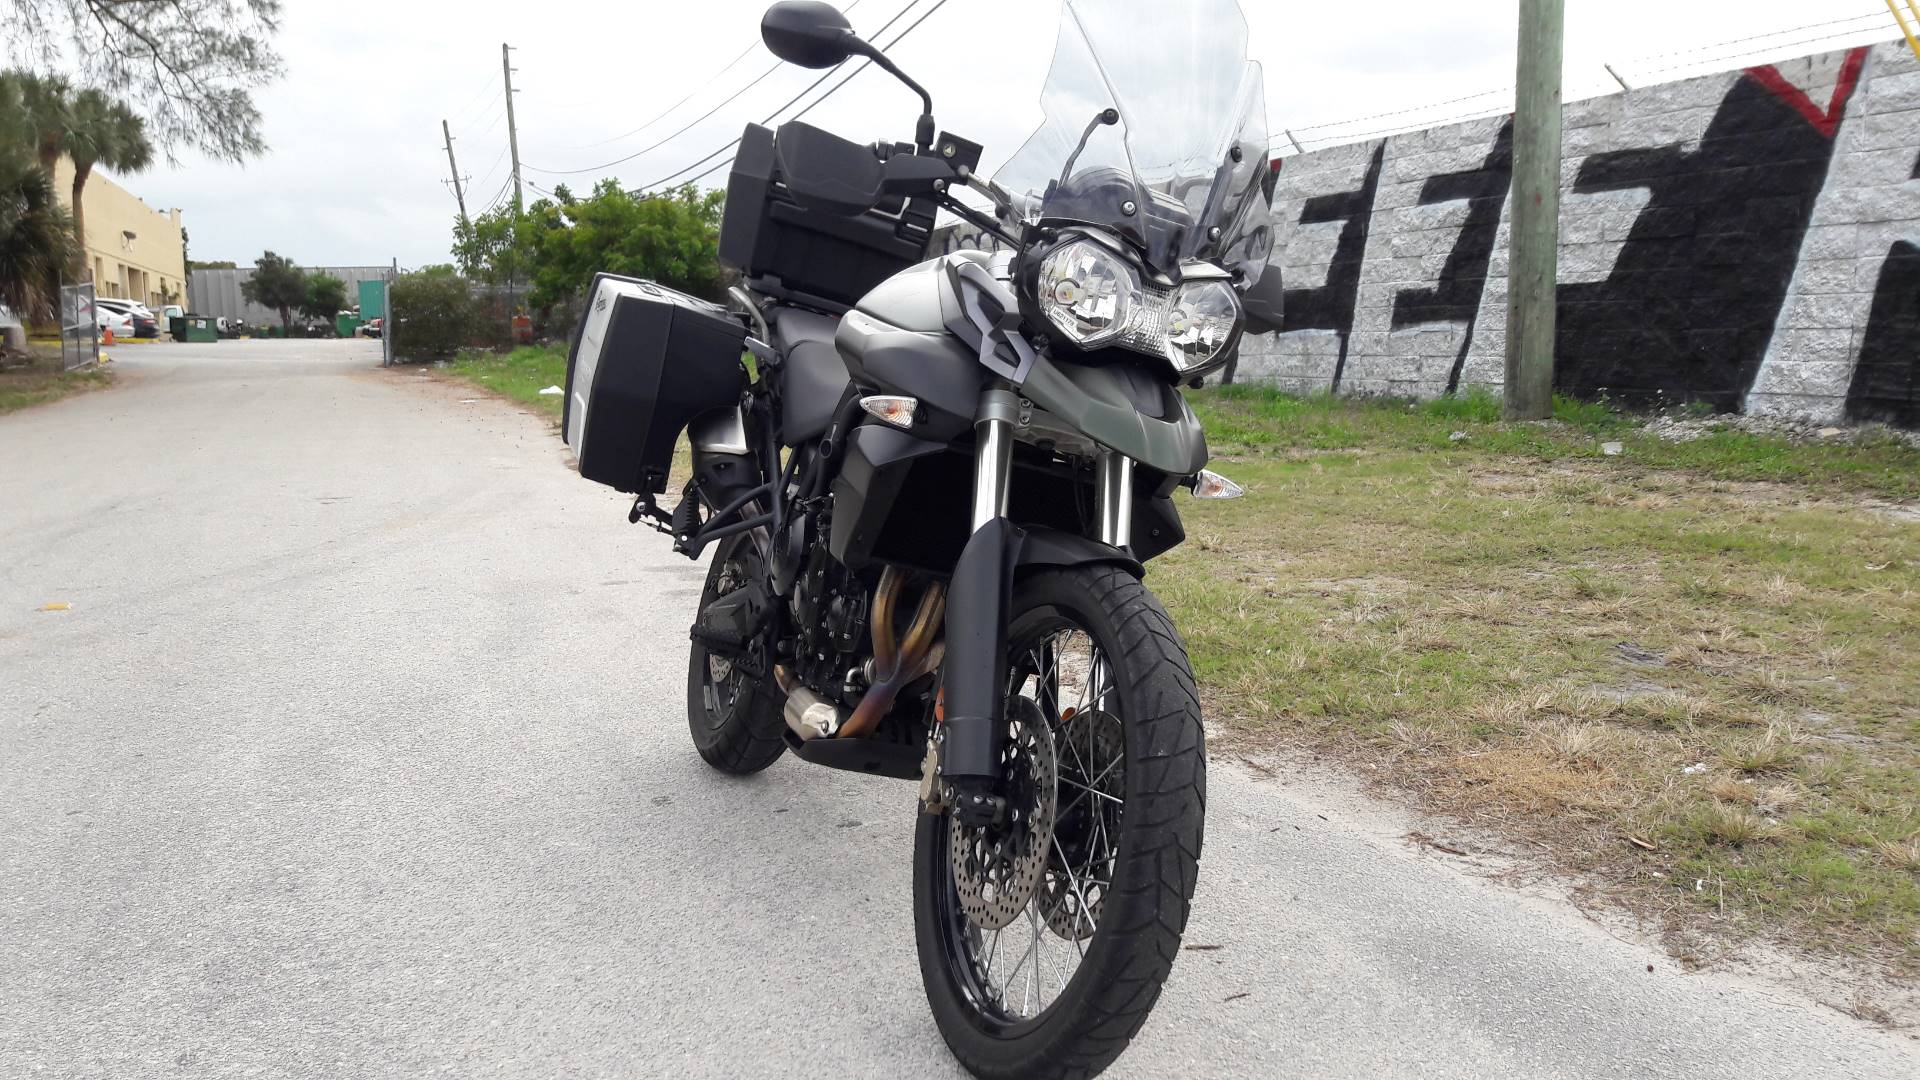 2014 Tiger 800 XC ABS